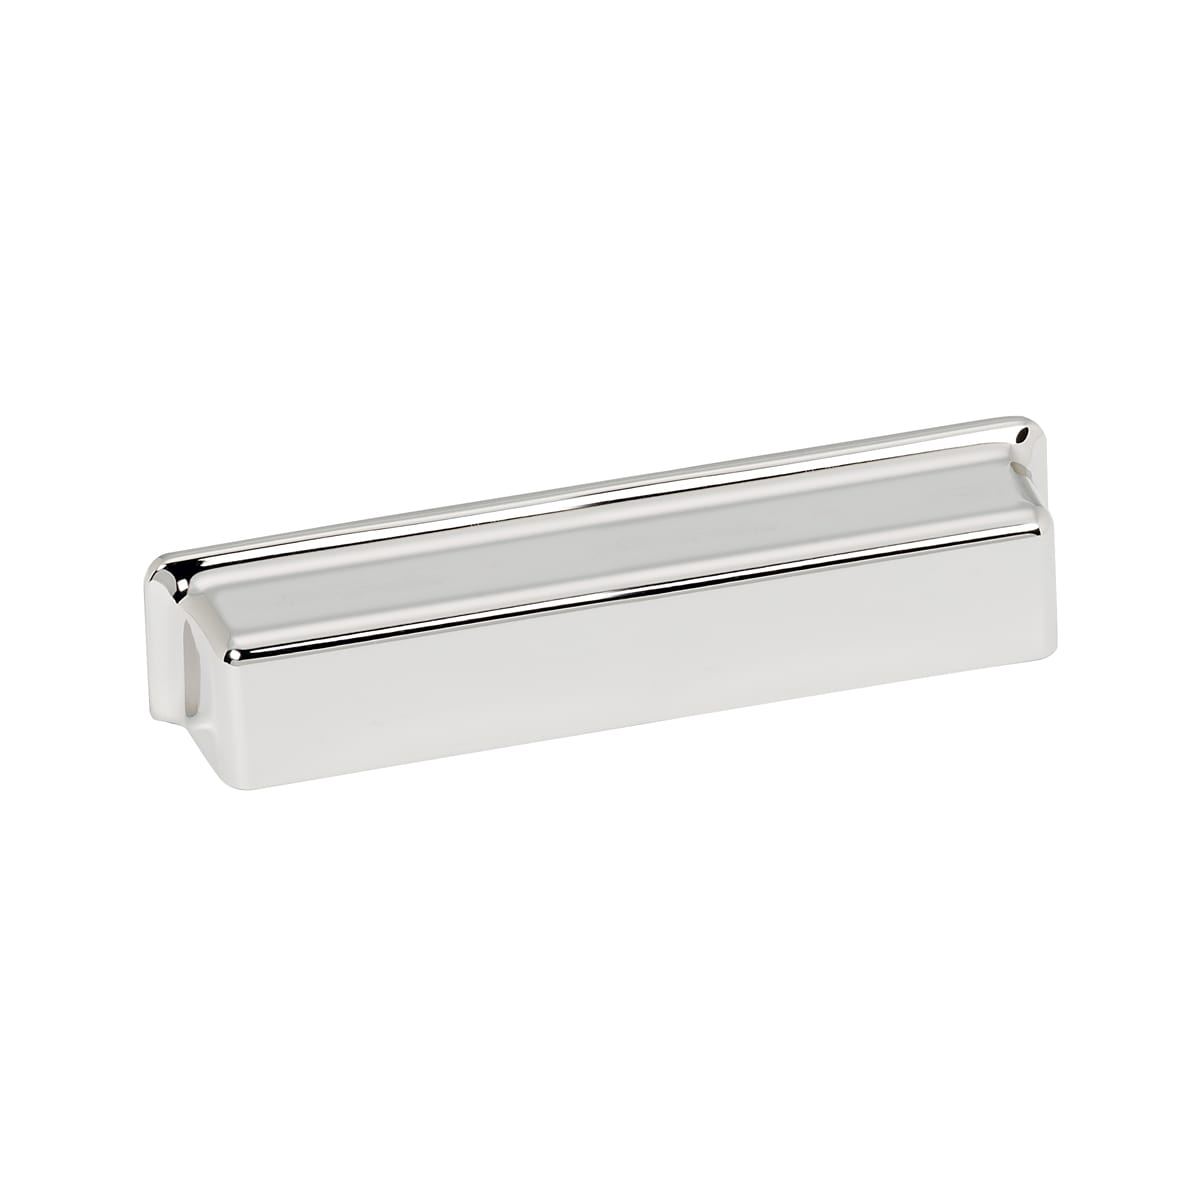 Alno Millennium 5 Inch Center to Center Cup Cabinet Pull